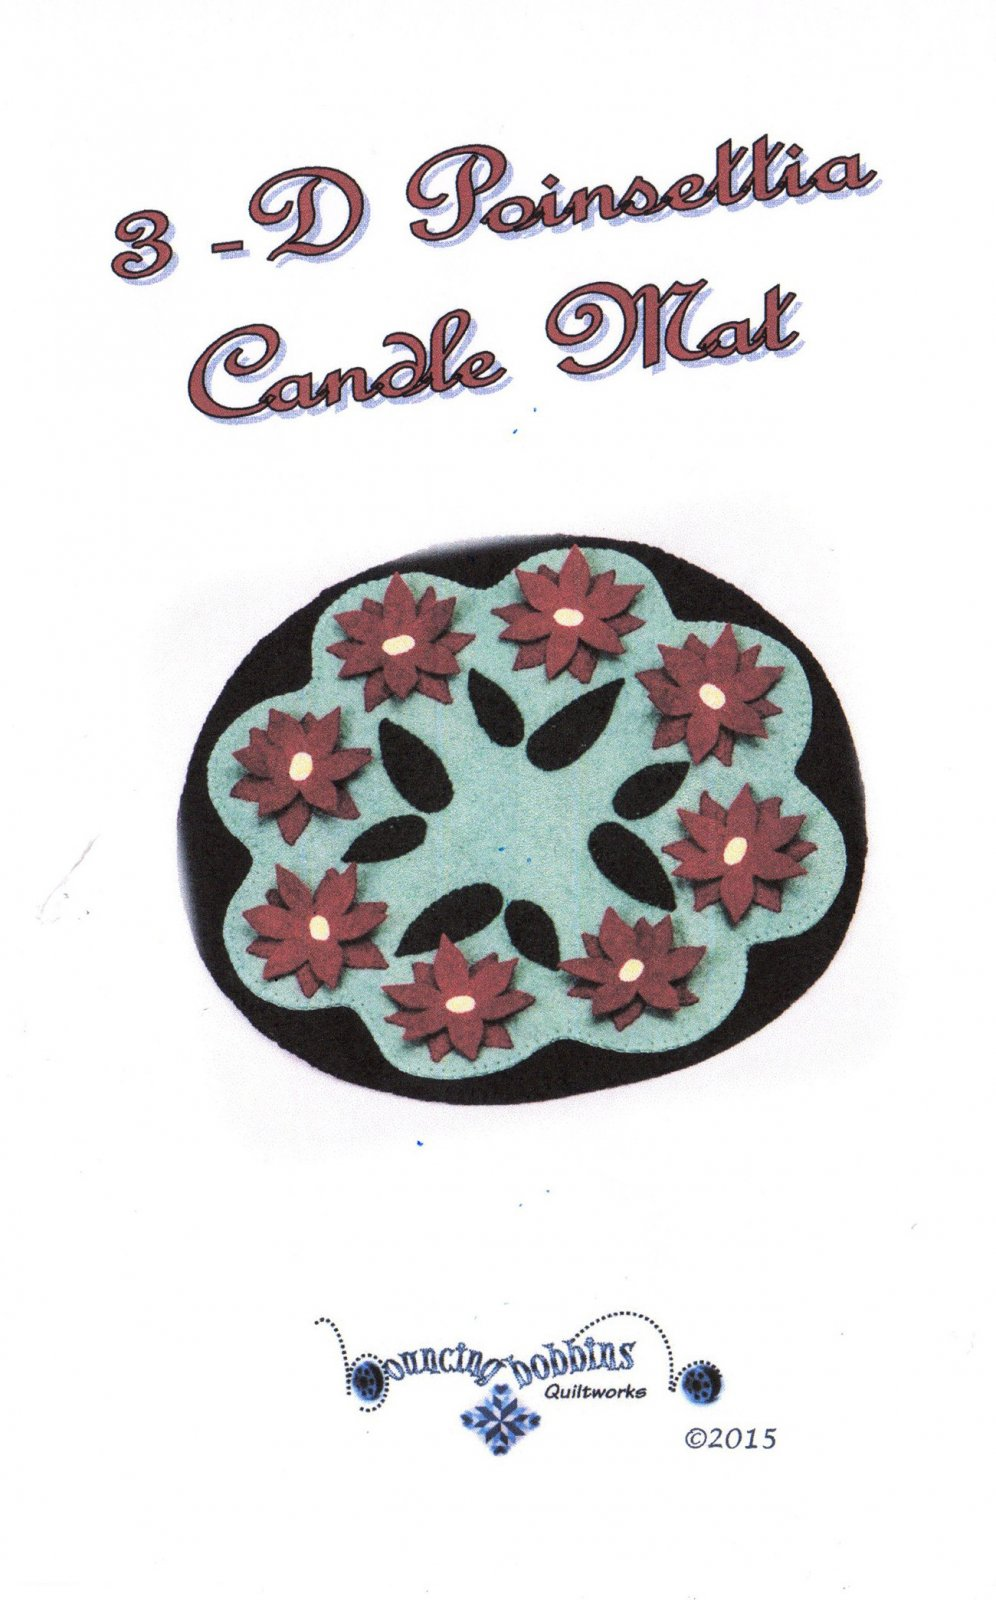 Poinsettia Wool Candle Mat